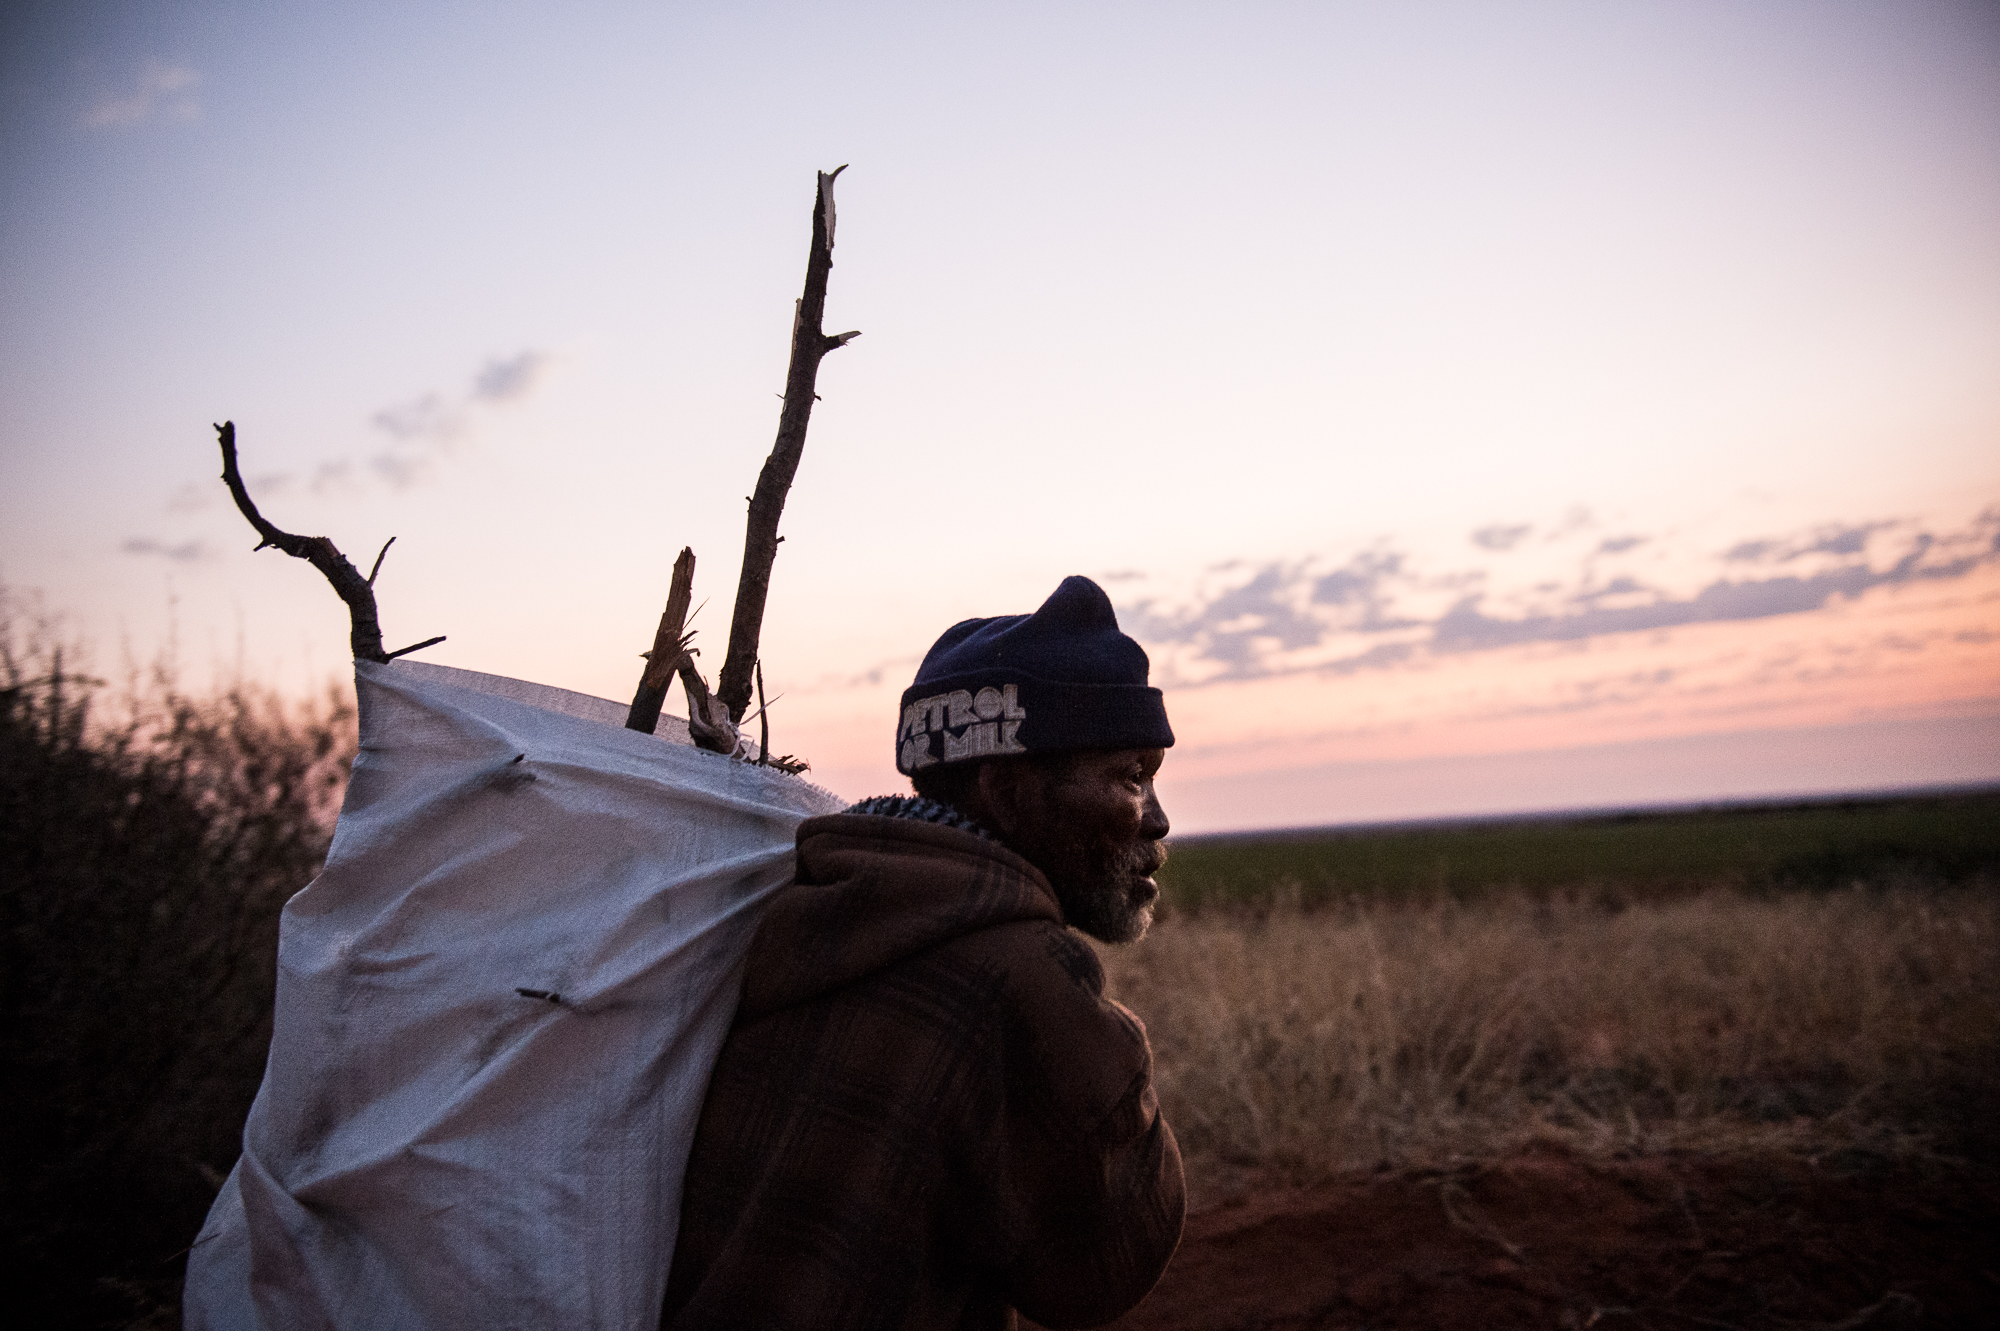 South Africa, Northern Cape, 03.08.2018 // A farmworker collecting firewood after work. In the Karoo Desert, the temperature can drop below 0 °C at night. // Lucas Bäuml